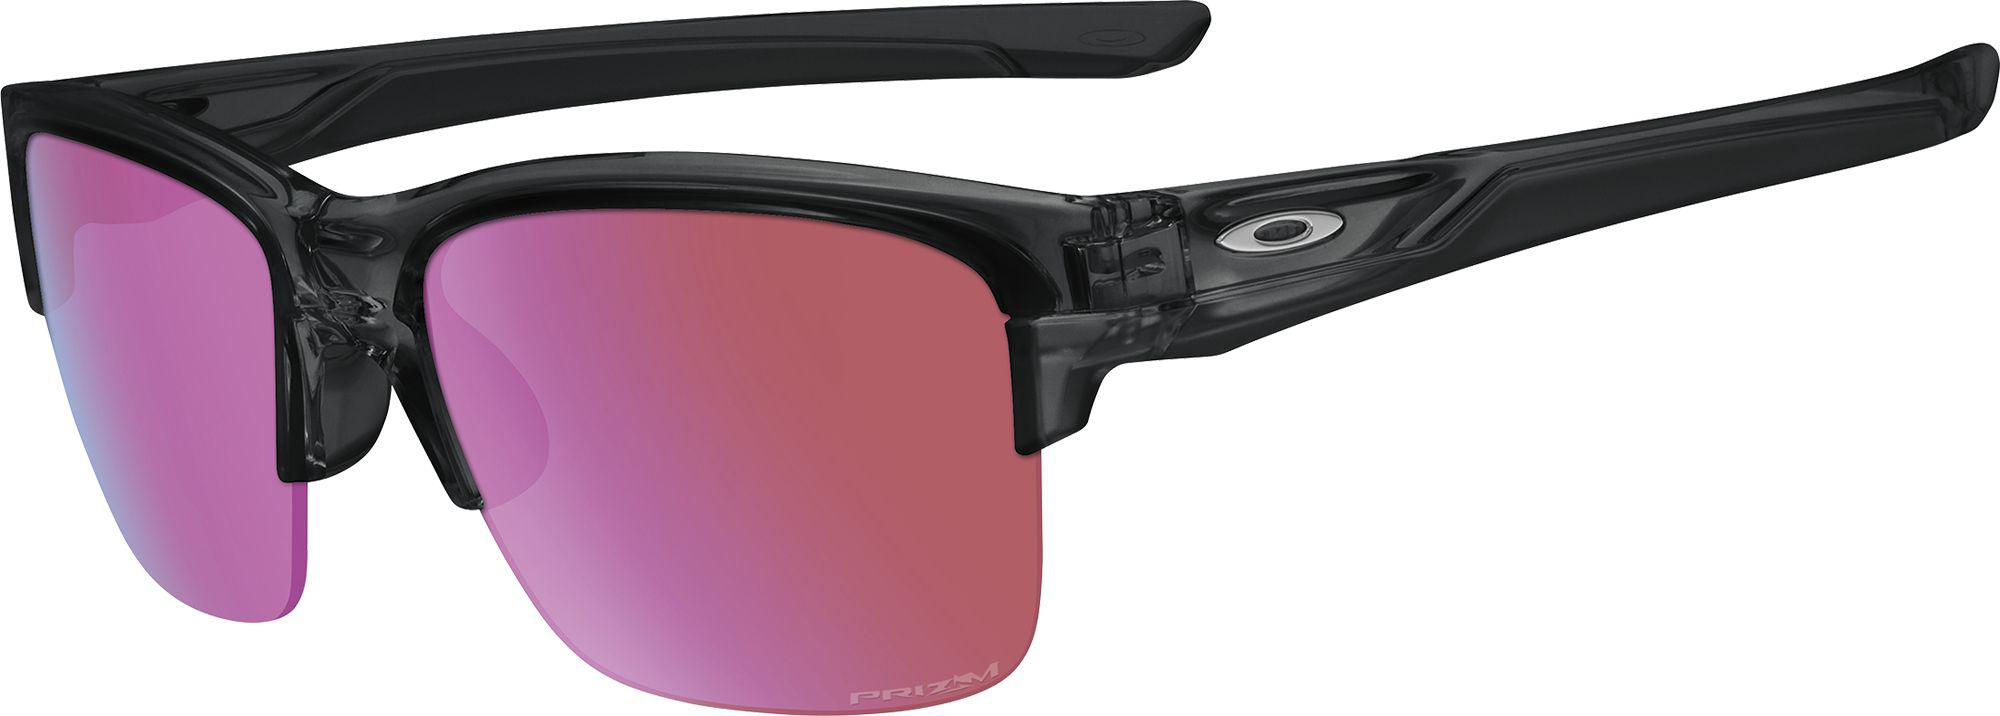 66e61f87a5a Lyst - Oakley Thinlink Prizm Golf Sunglasses in Black for Men